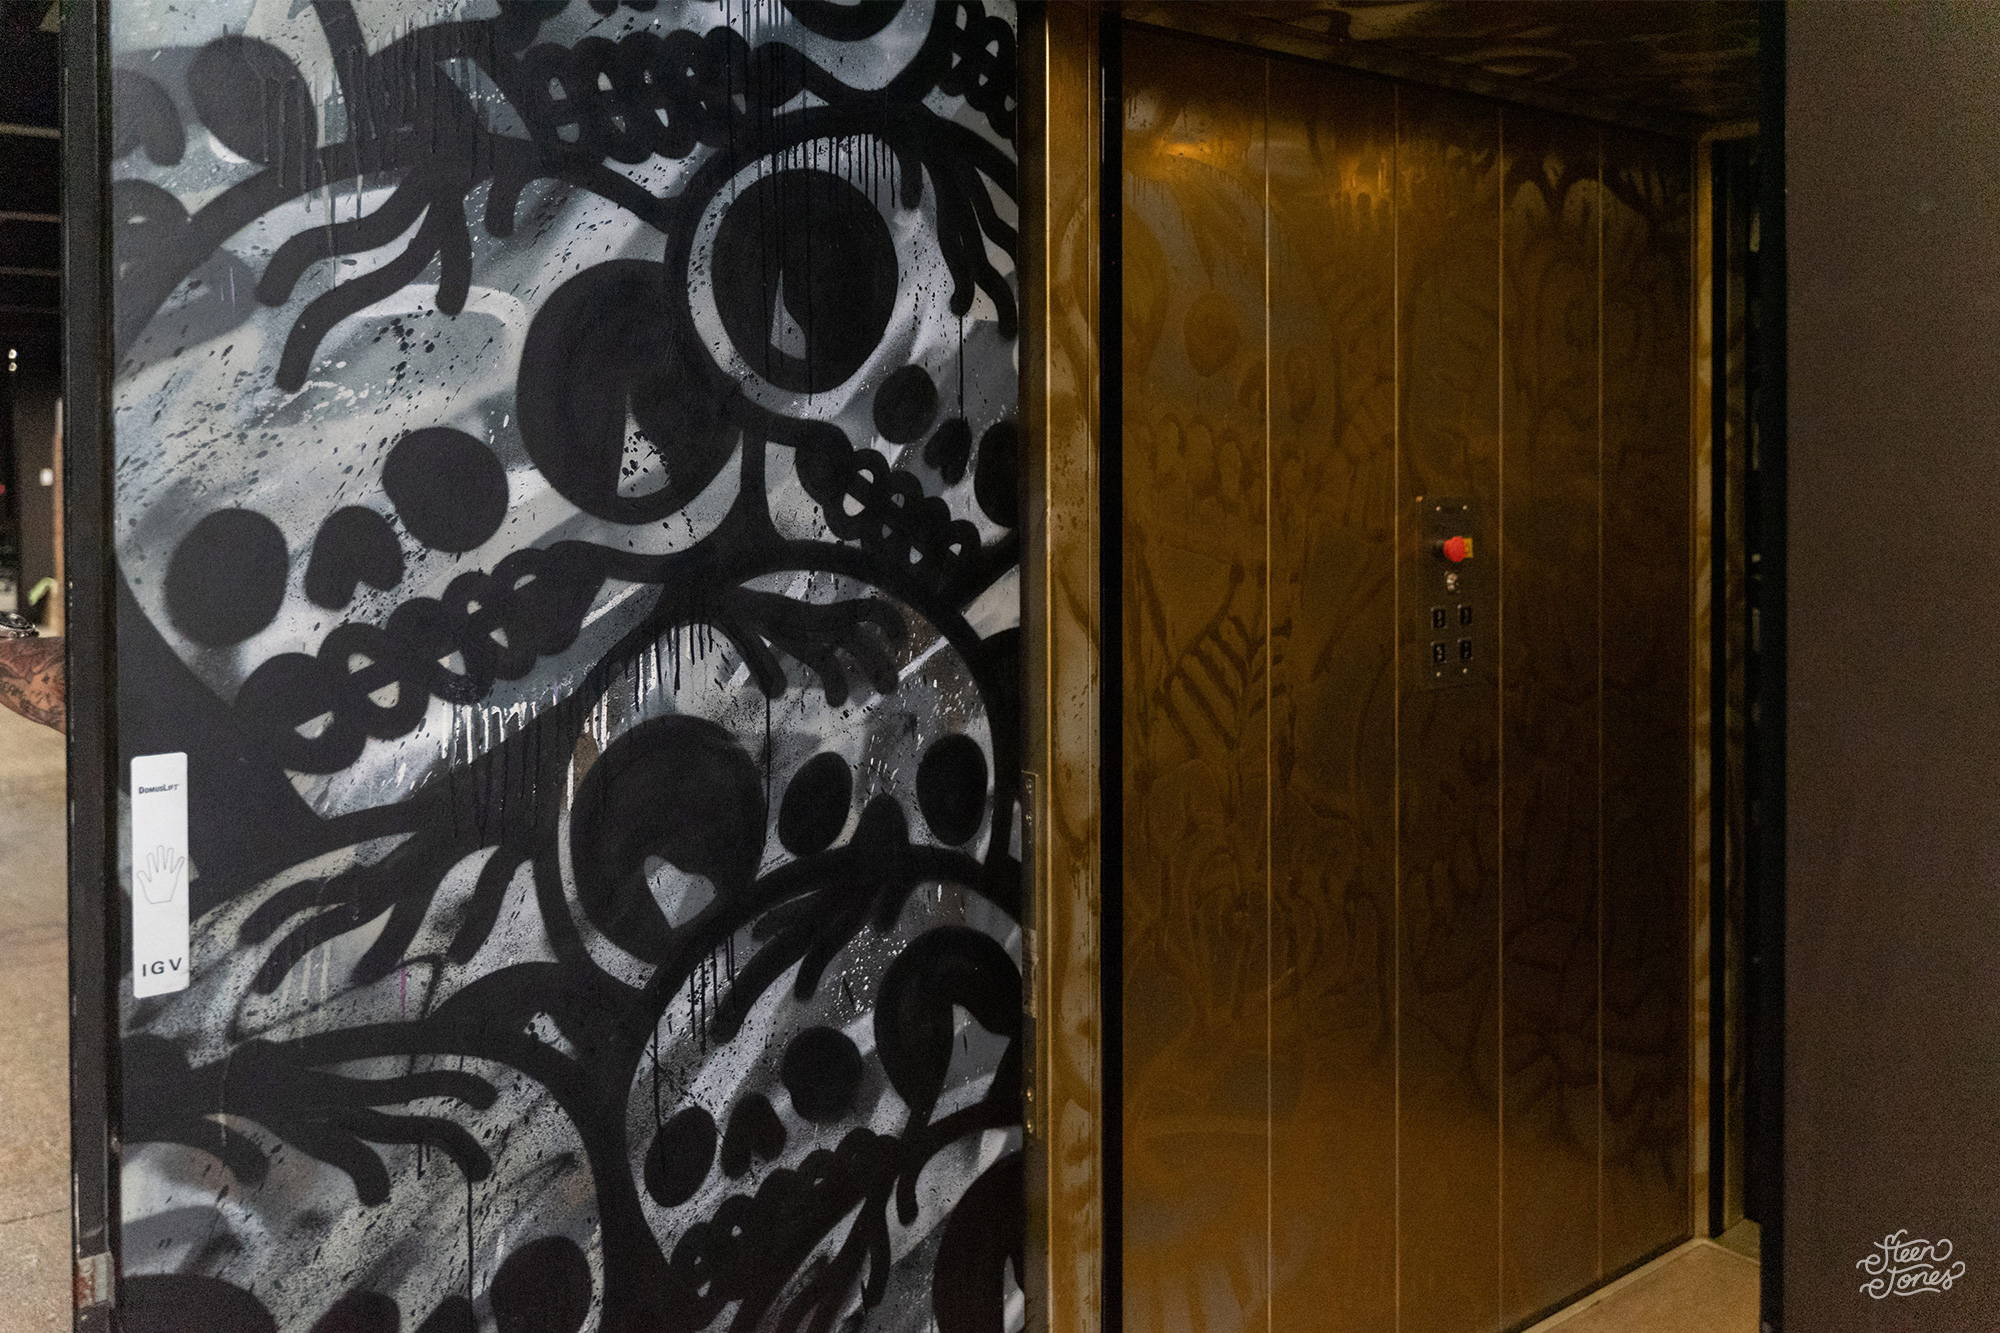 Steen Jones tattoo street artist Australia Private Commission Teneriffe elevator mural